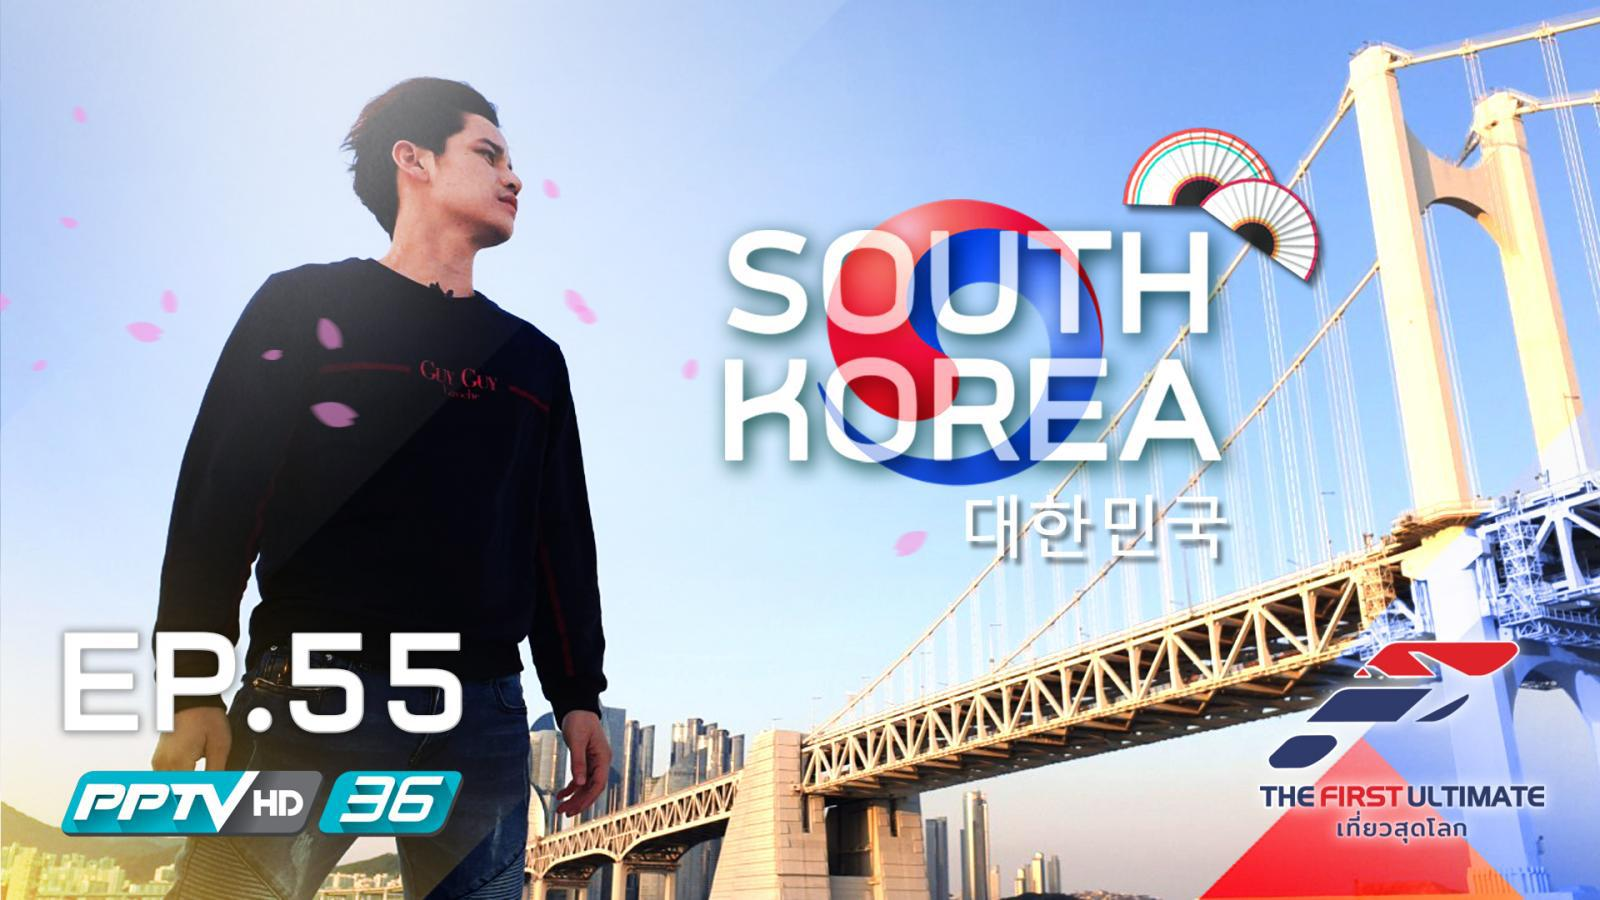 South Korea ตอน 4